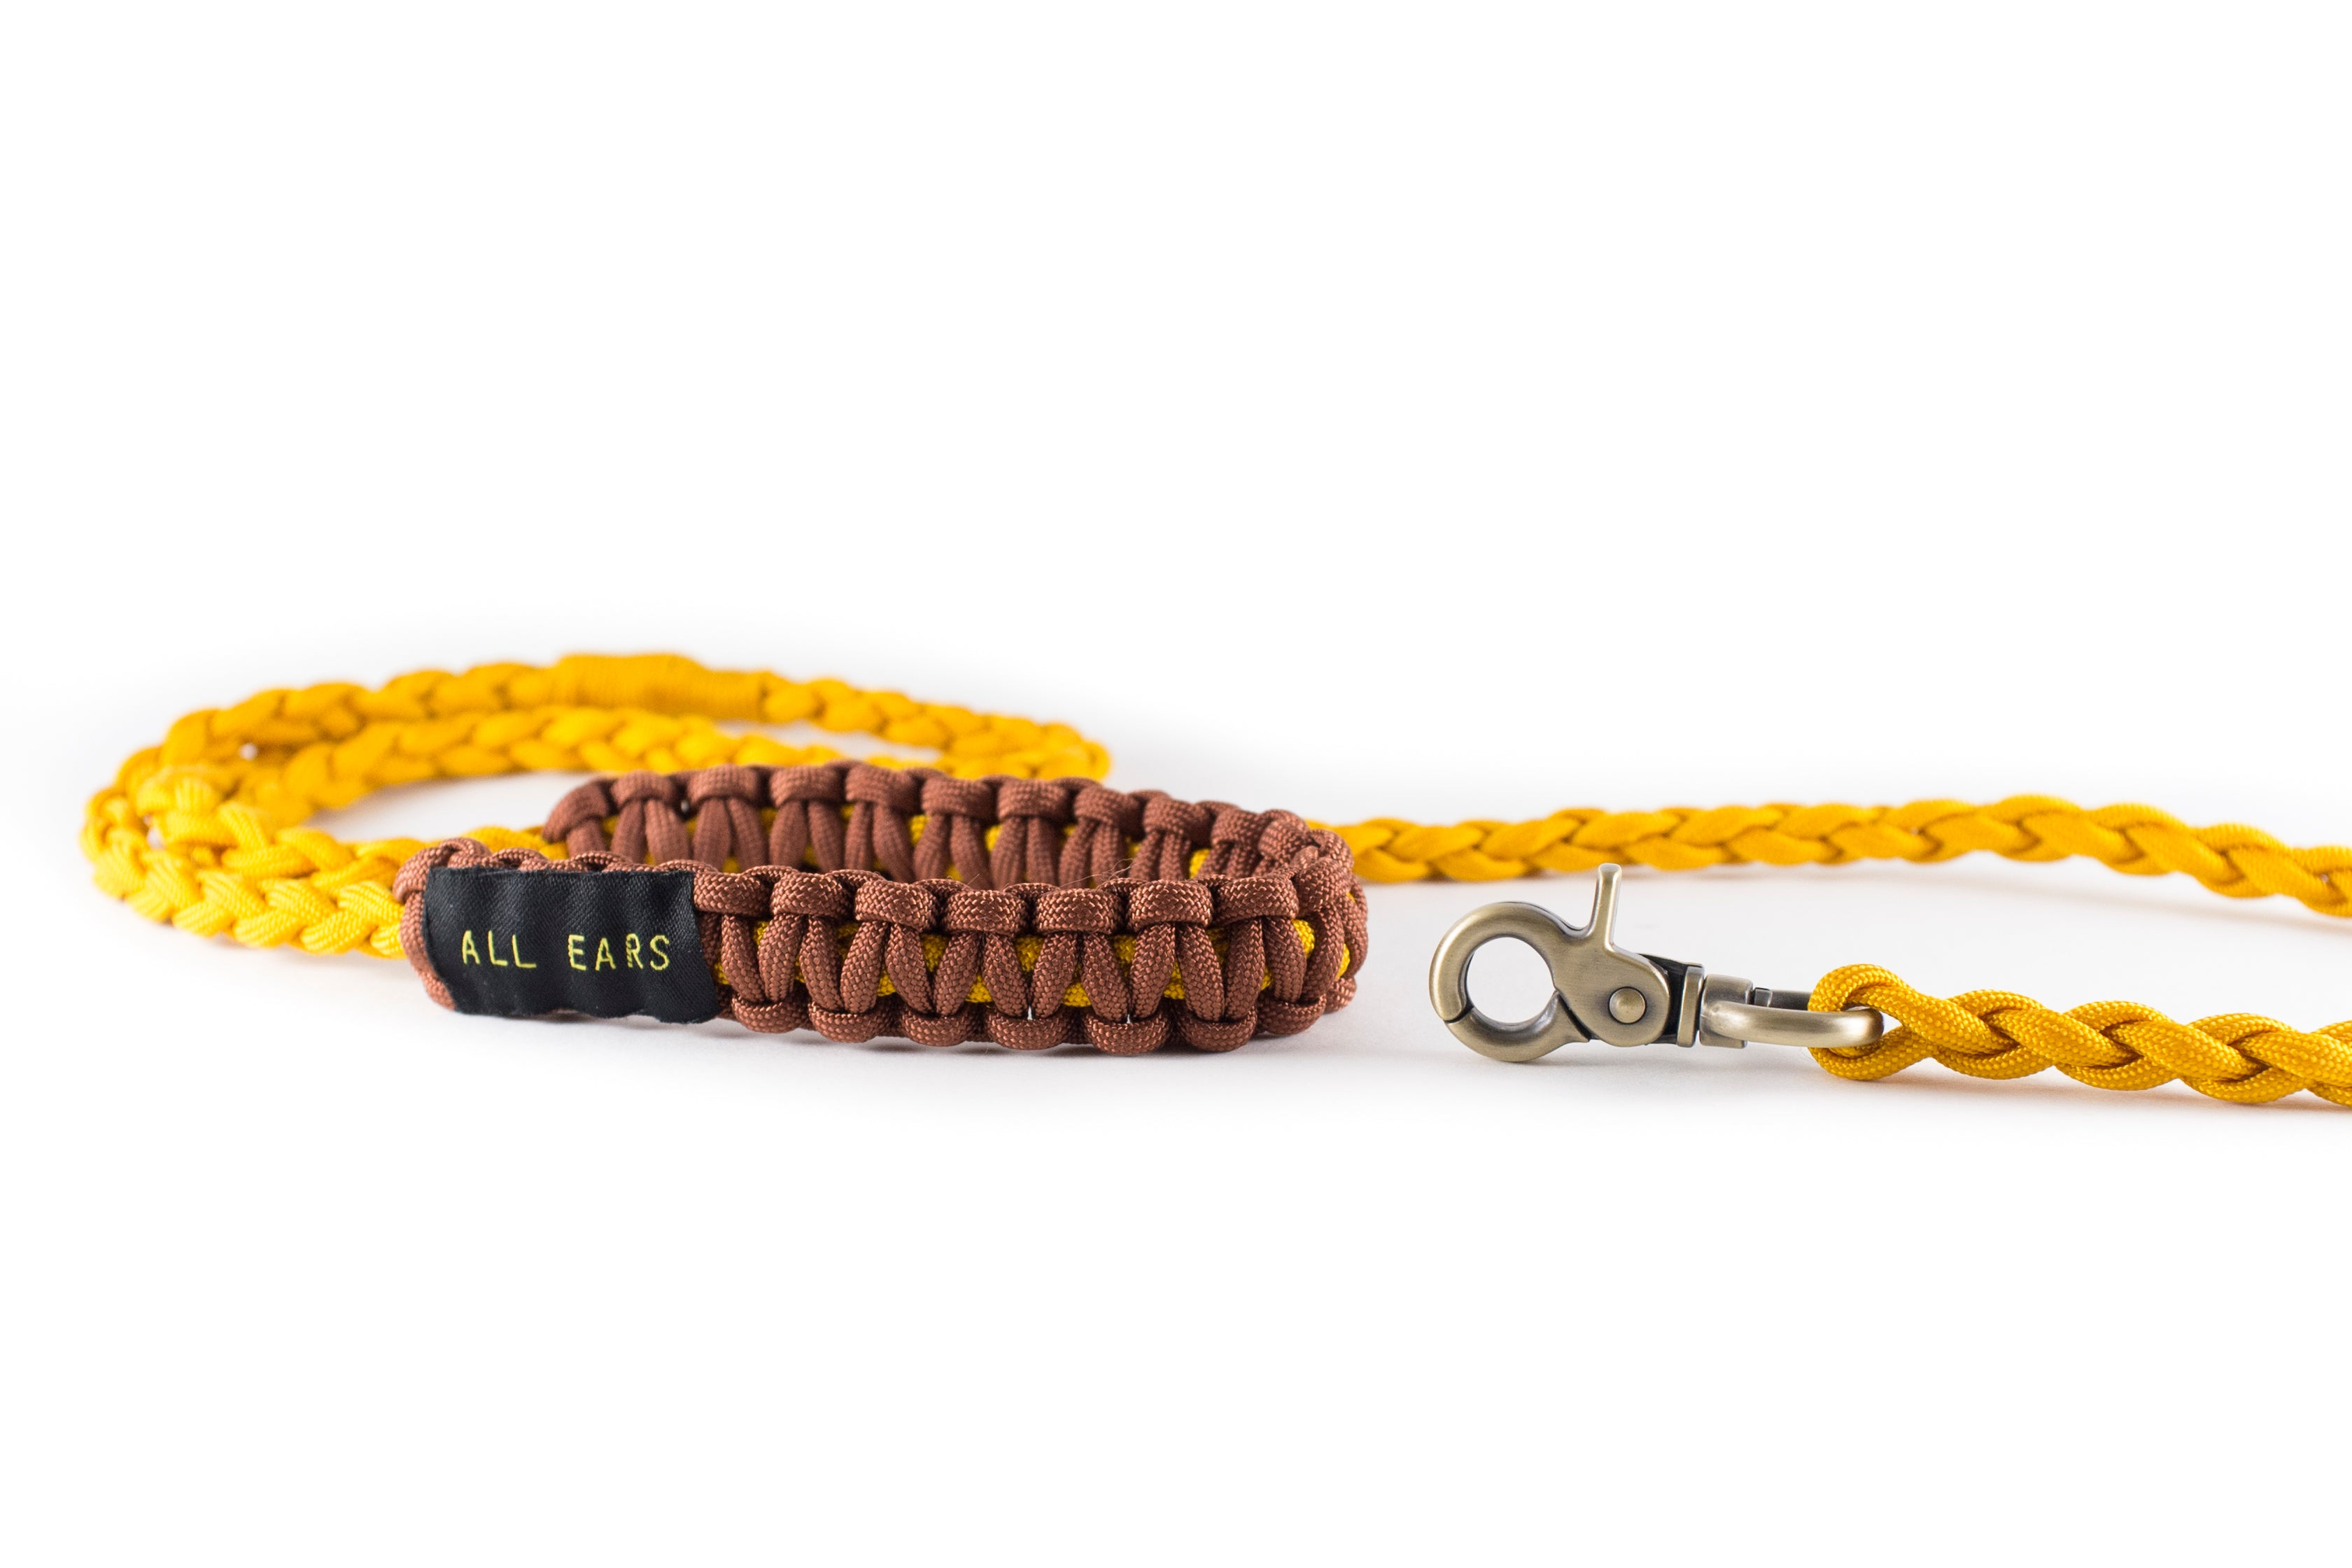 Braided Paracord 550 Leash - Golden Rod